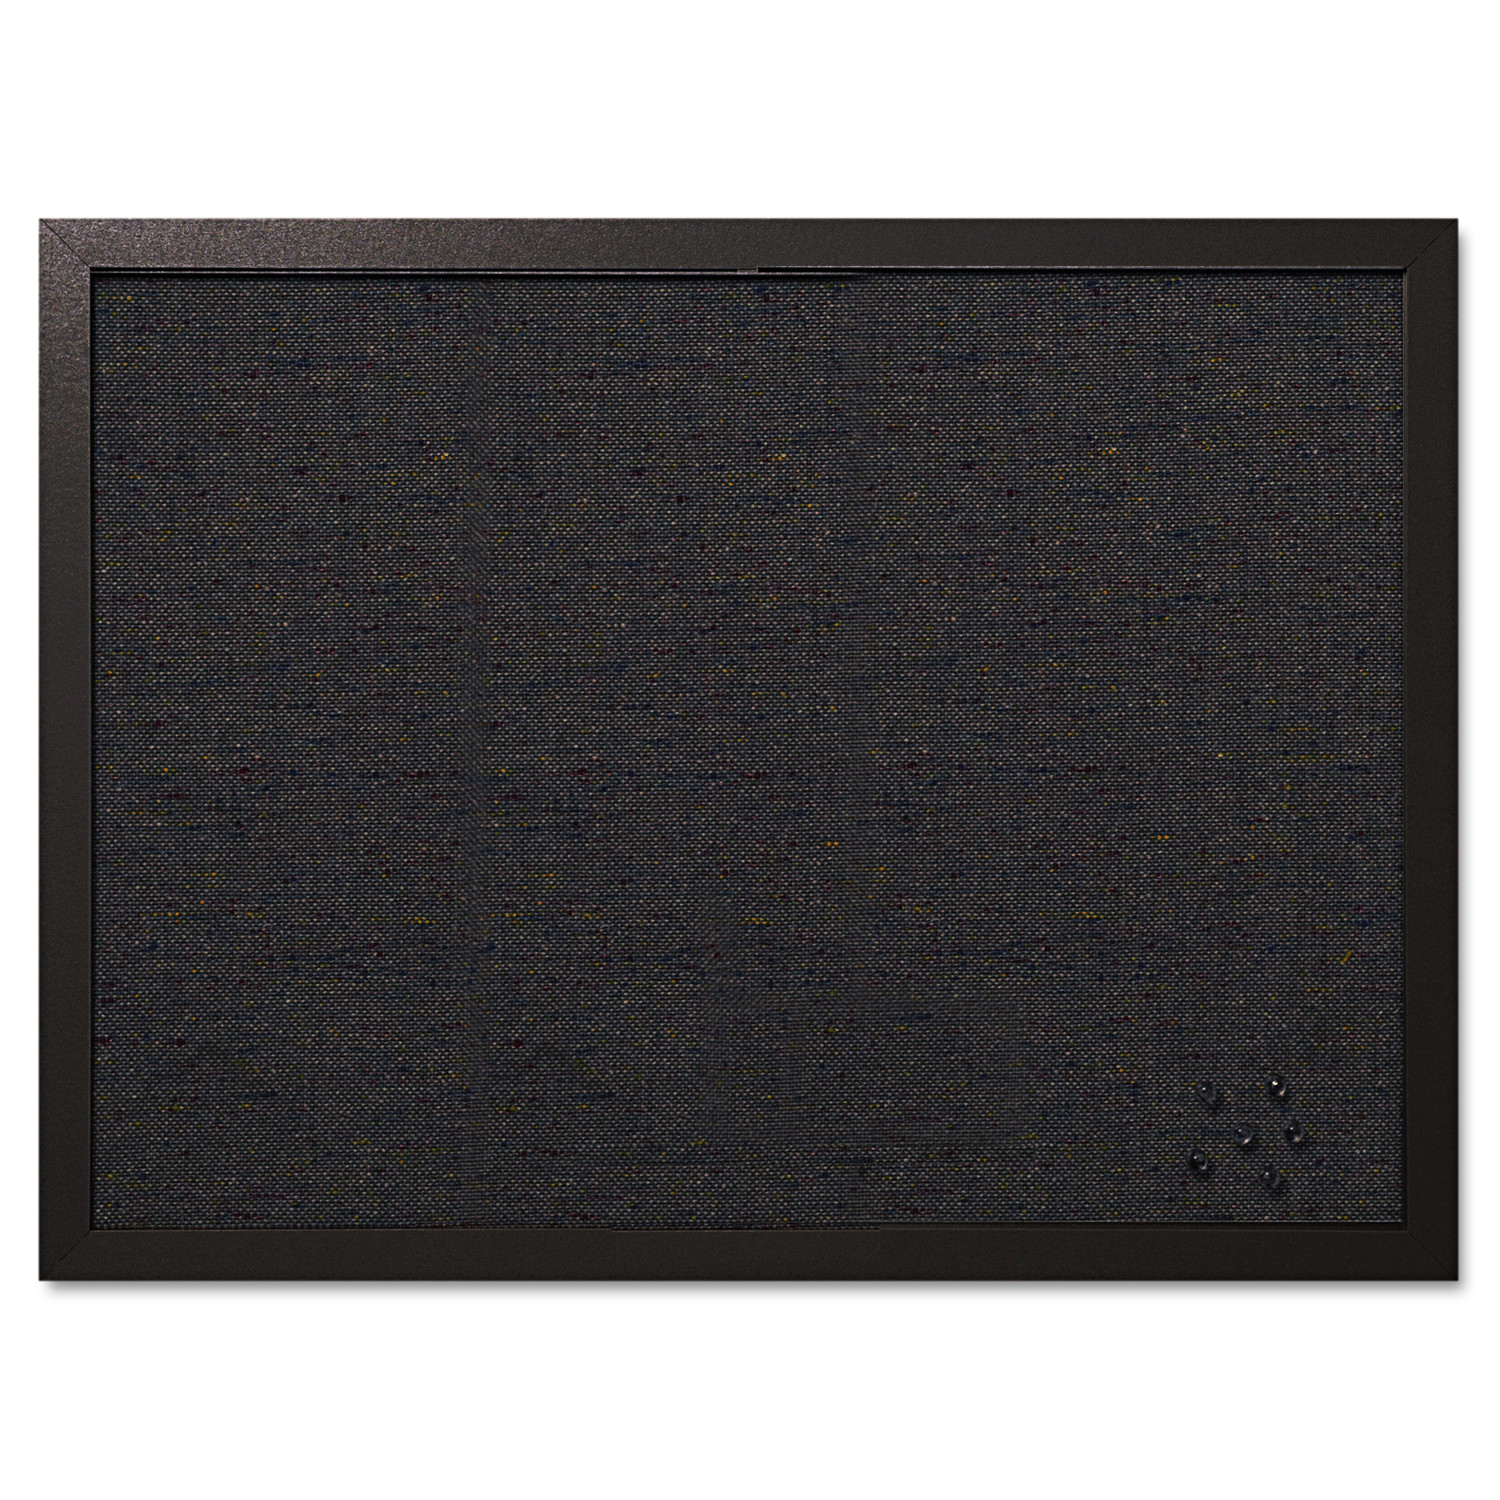 MasterVision 24 x 18 in. Fabric Bulletin Board